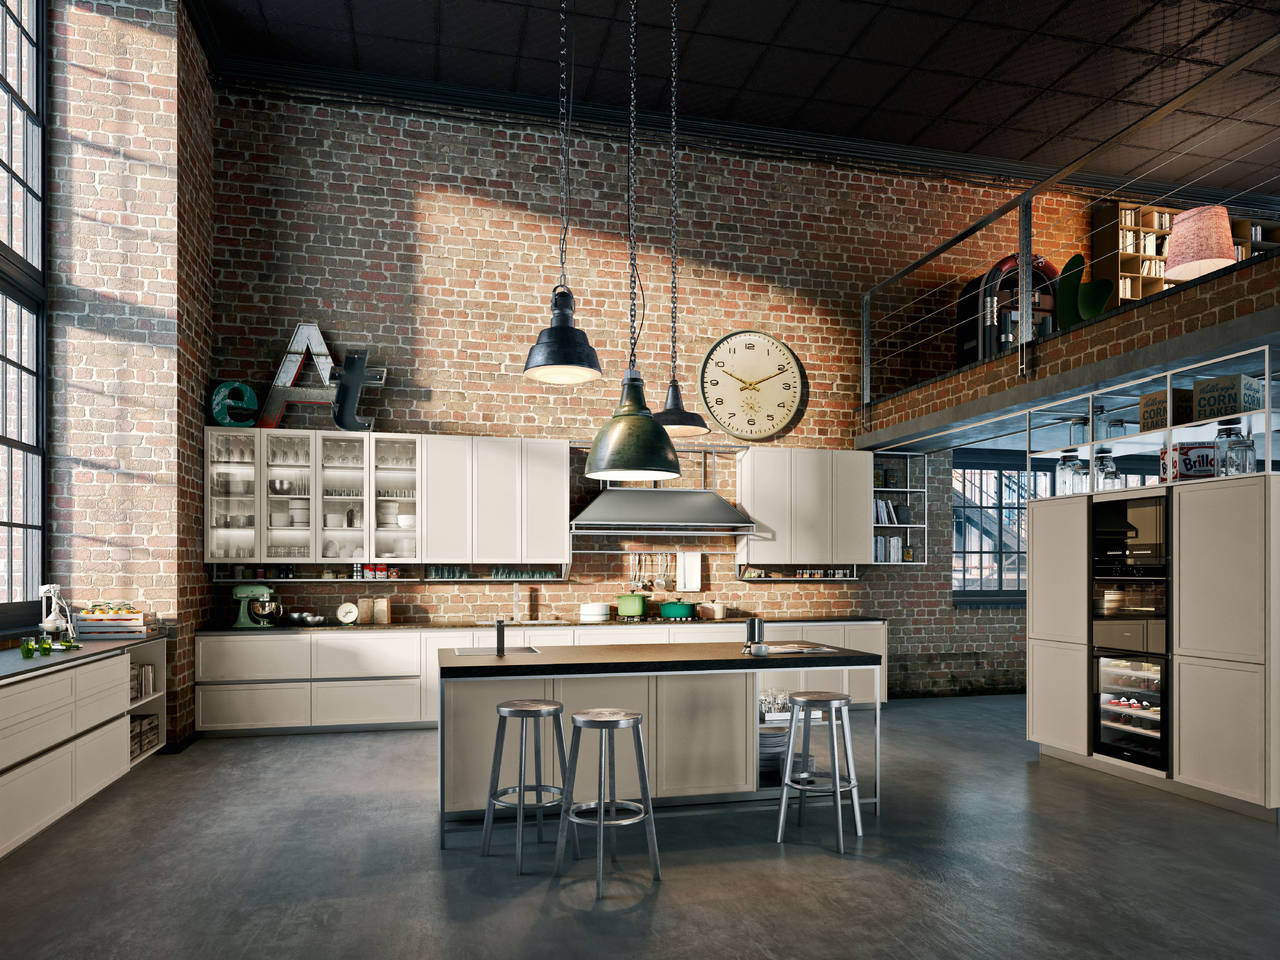 atmosfere industriali per la cucina urbana ambiente cucina. Black Bedroom Furniture Sets. Home Design Ideas